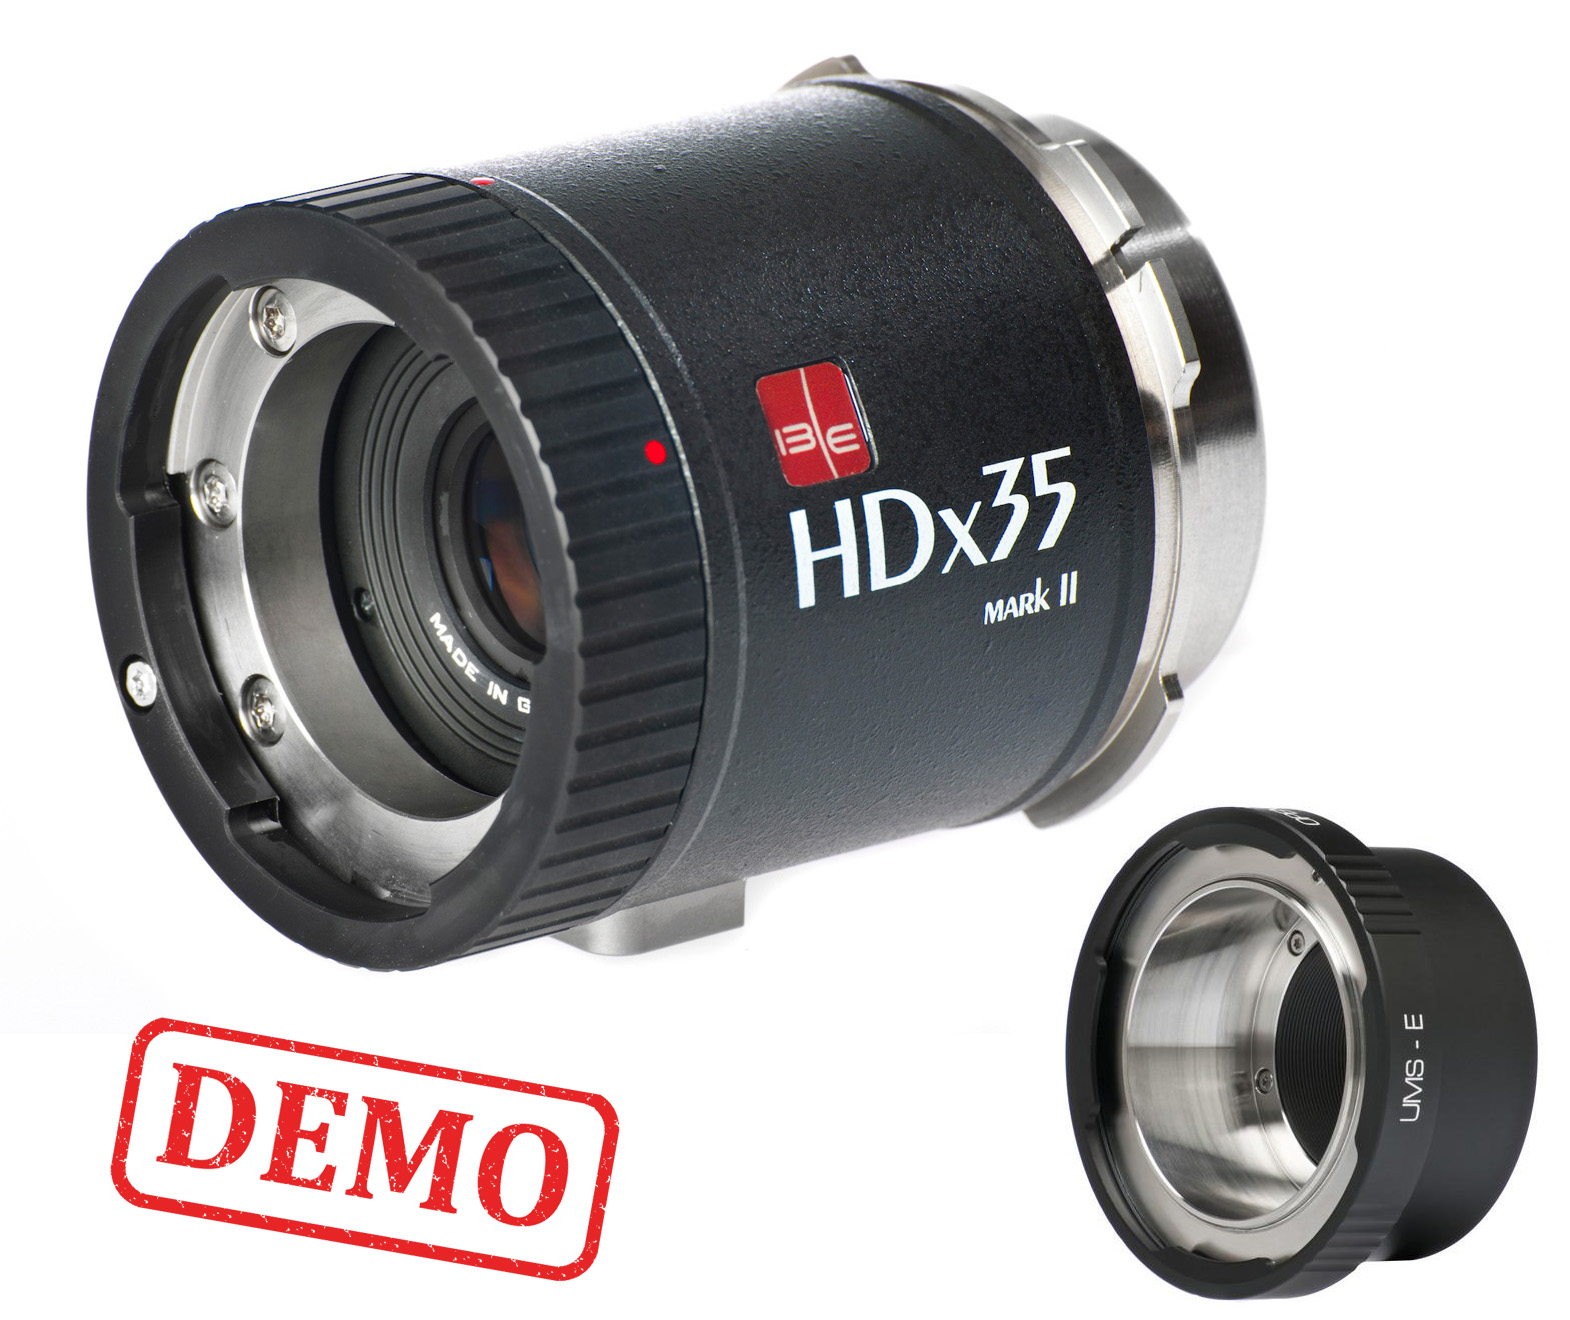 DEMO - IBE OPTICS HDx35 Mark II B4 to PL UMS Optical Converter (2.6x) + Sony UMS-E adapter